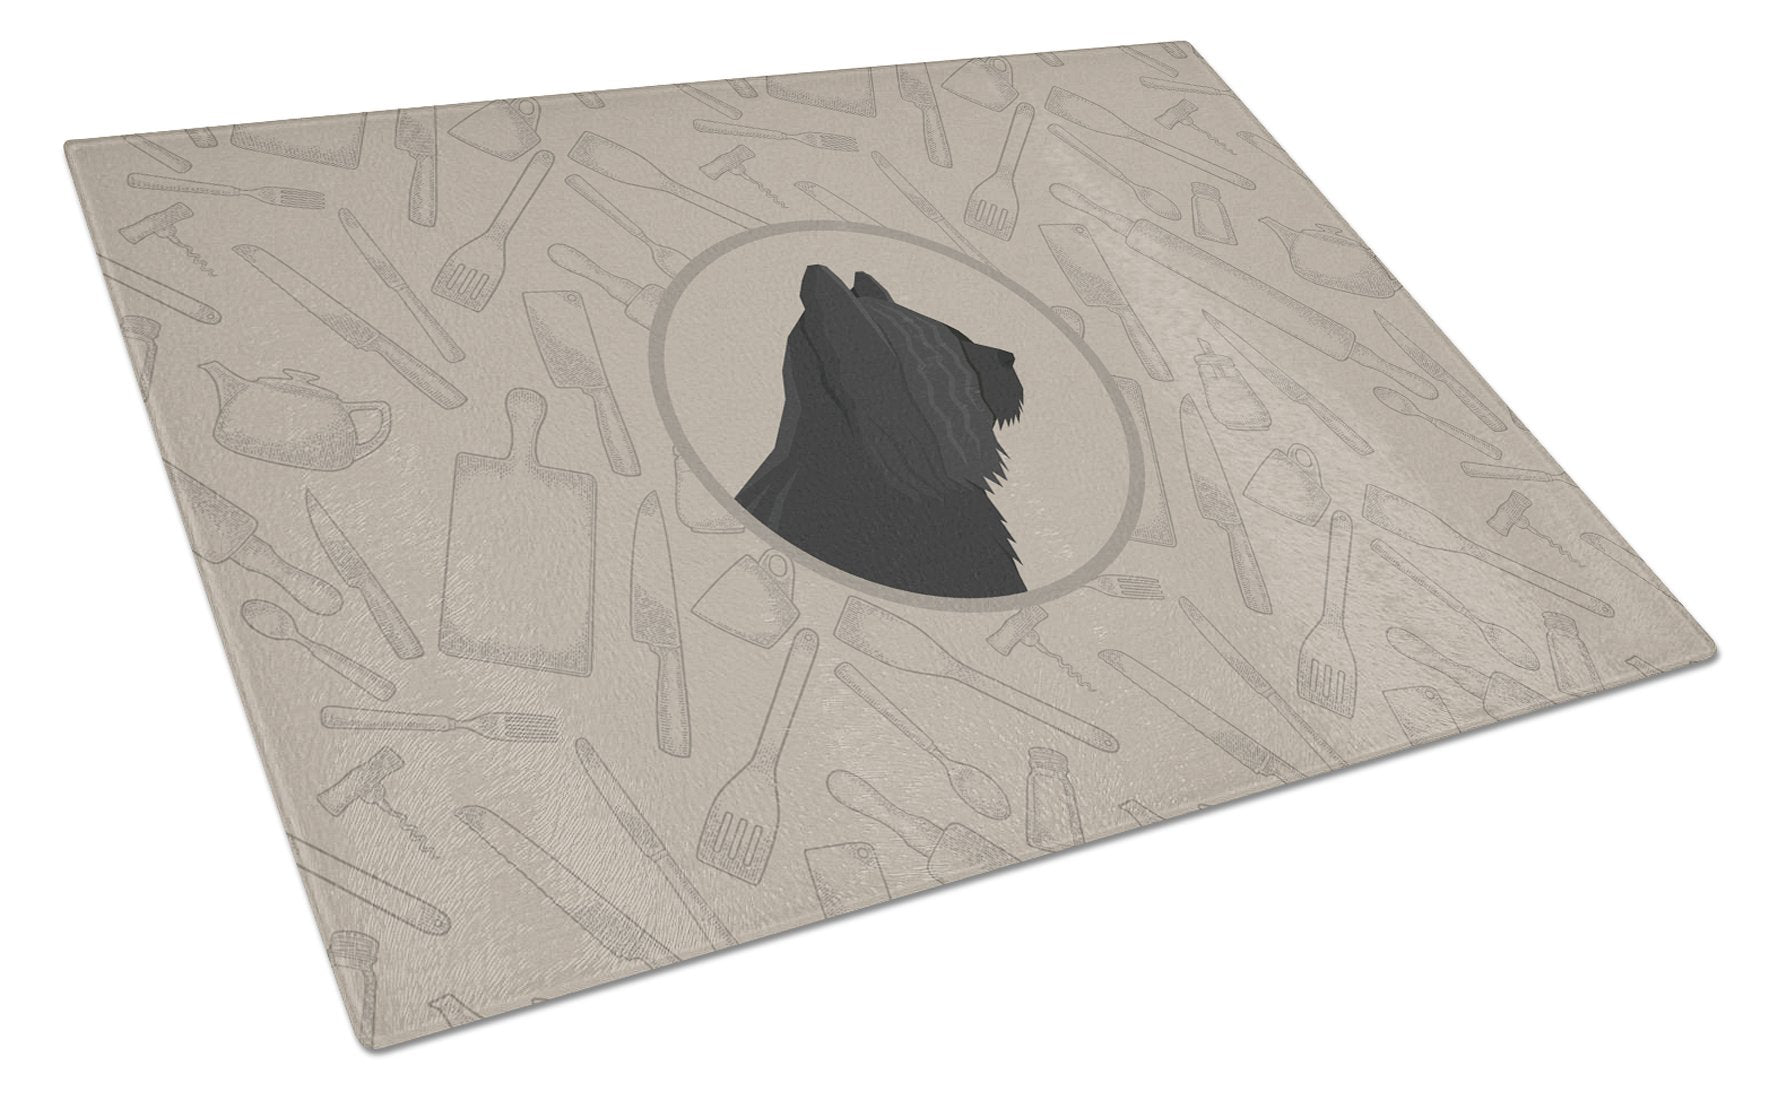 Skye Terrier In the Kitchen Glass Cutting Board Large CK2211LCB by Caroline's Treasures